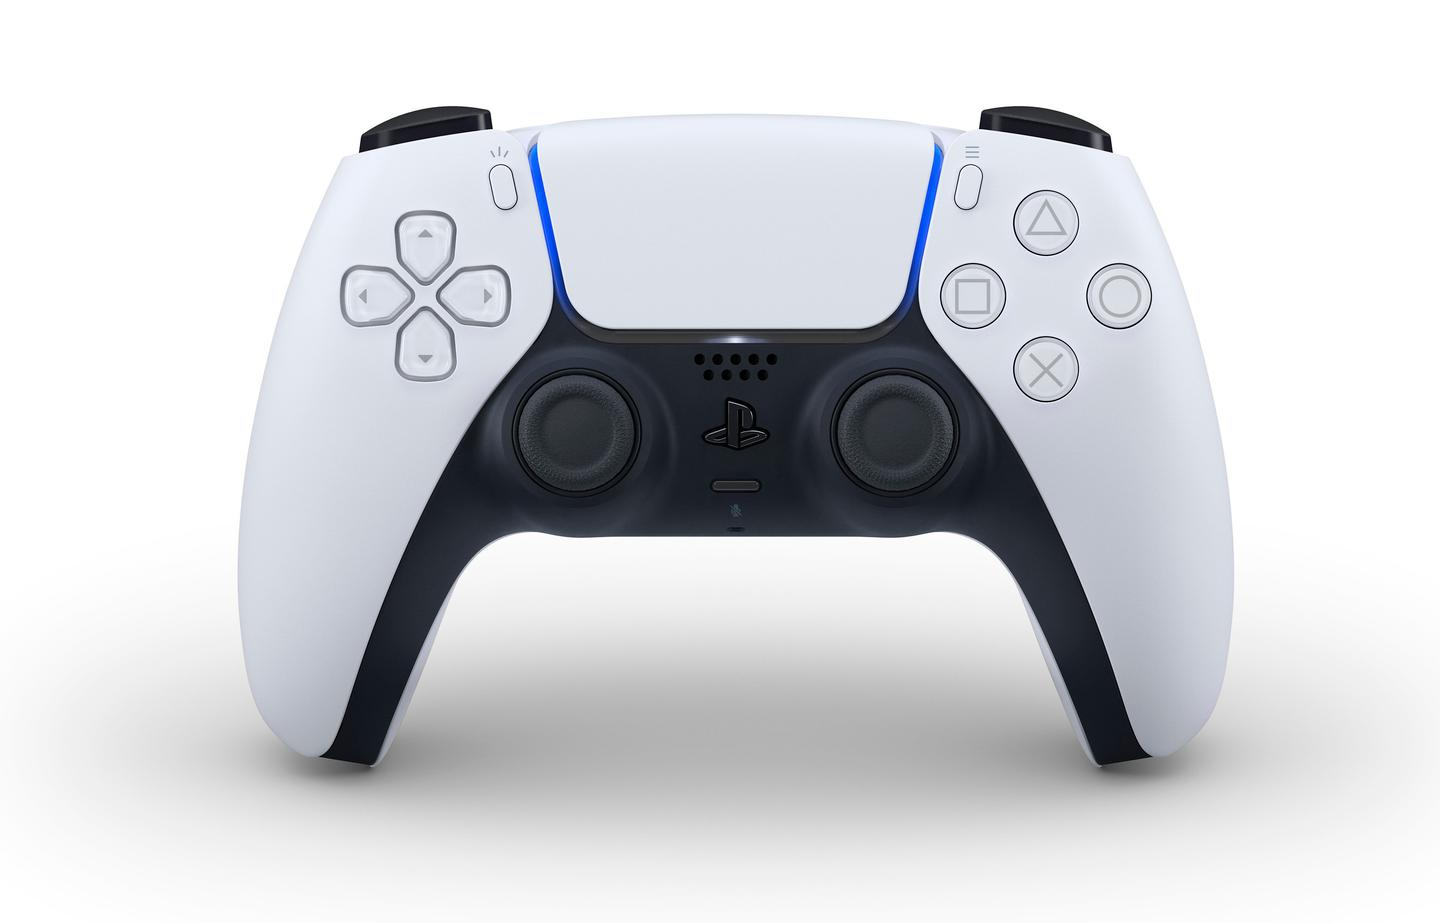 Sony's PlayStation 5 controller, the DualSense, is a bit of a departure from previous generations